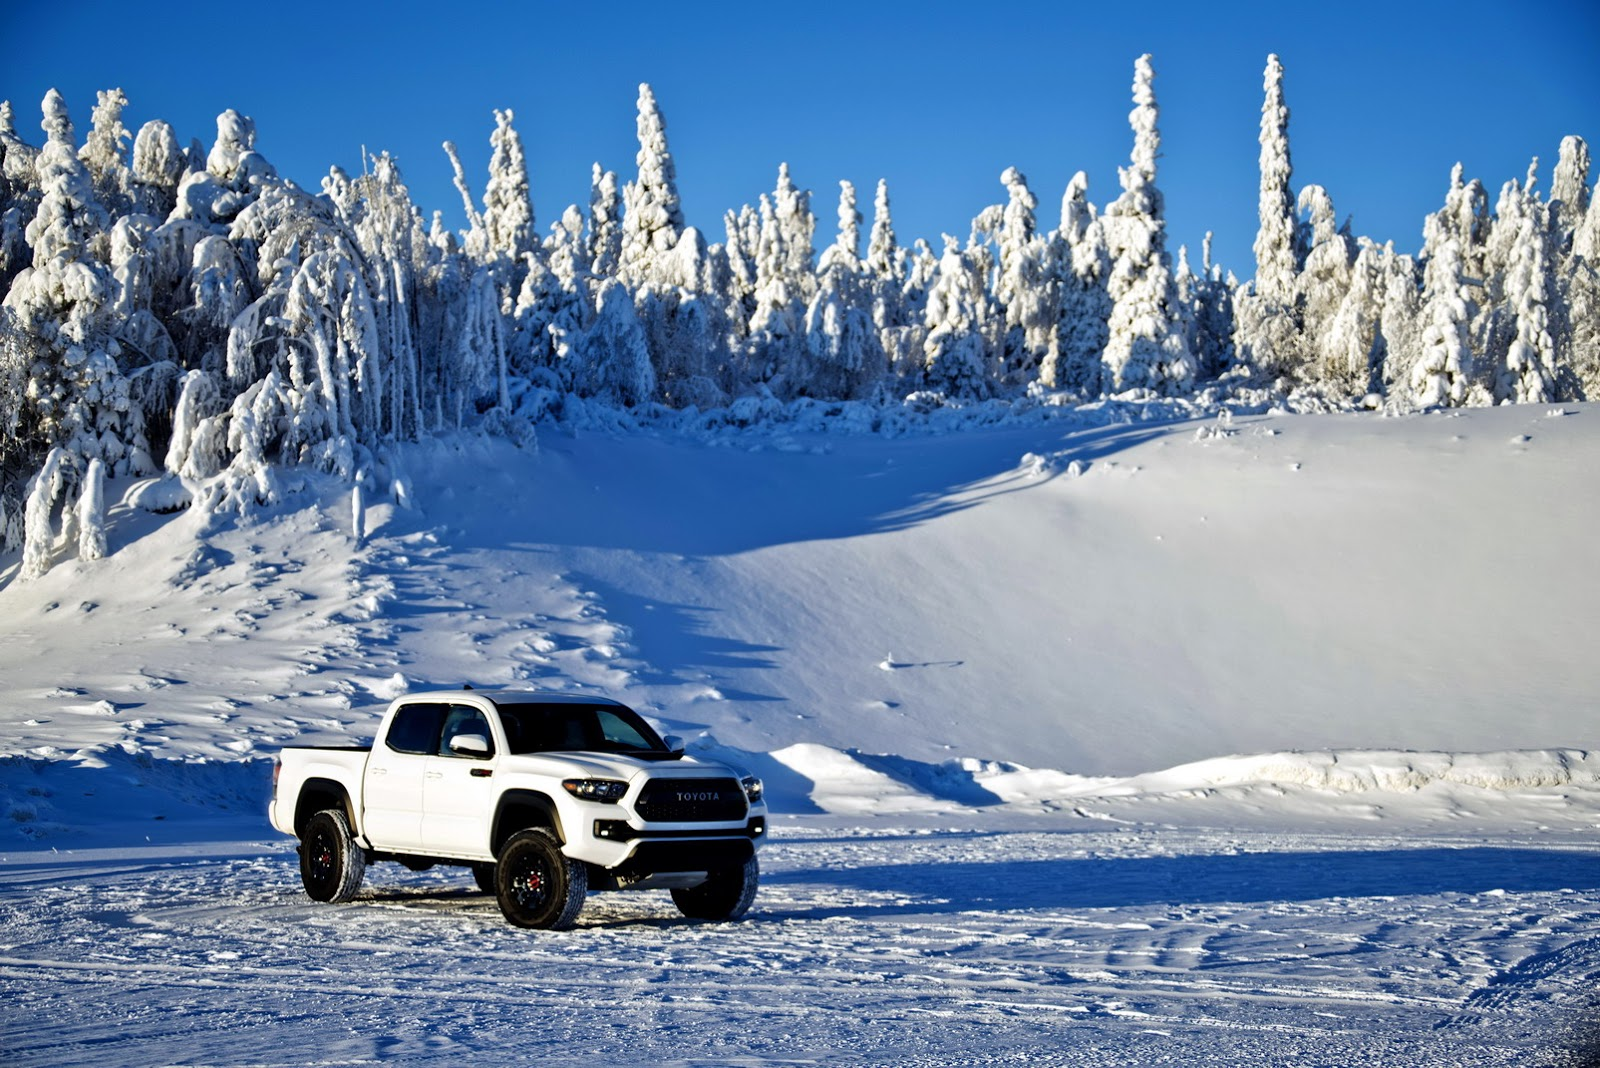 All Types  2016 Tacoma Trd Off Road  19s20s Car and Autos All